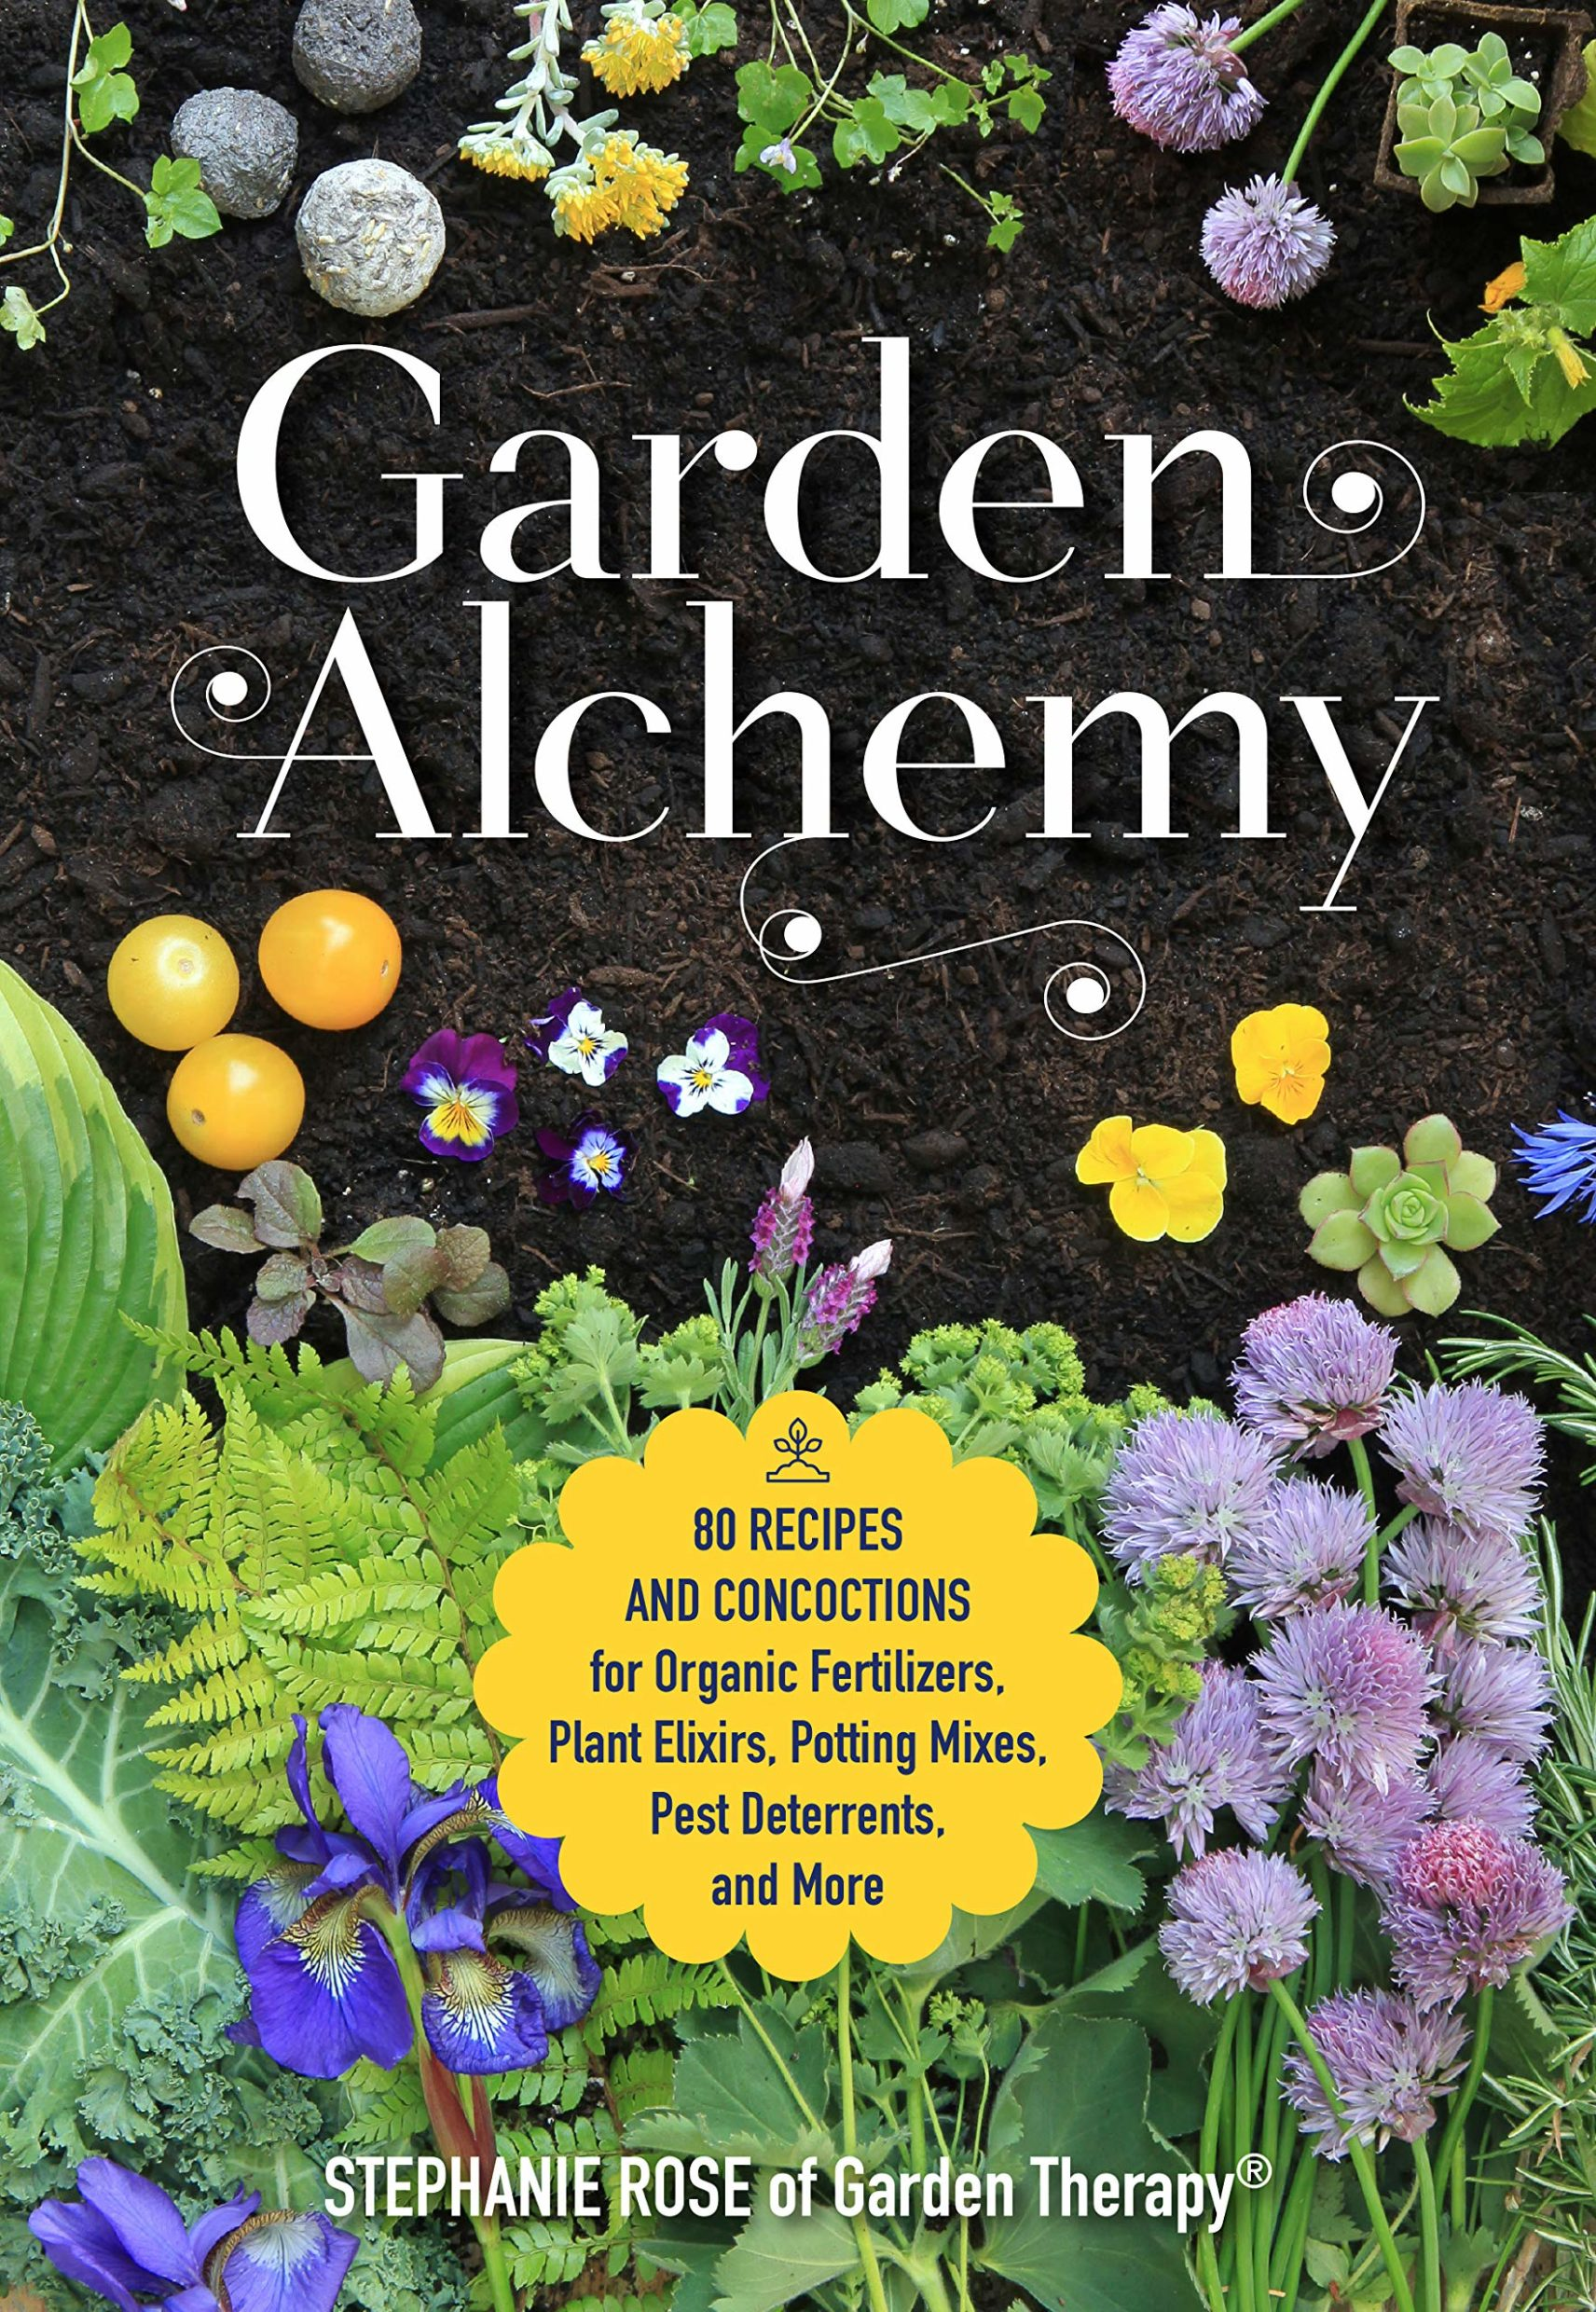 Garden Alchemy: 80 Recipes and Concoctions for Organic Fertilizers, Plant Elixirs, Potting Mixes, Pest Deterrents, and Mor